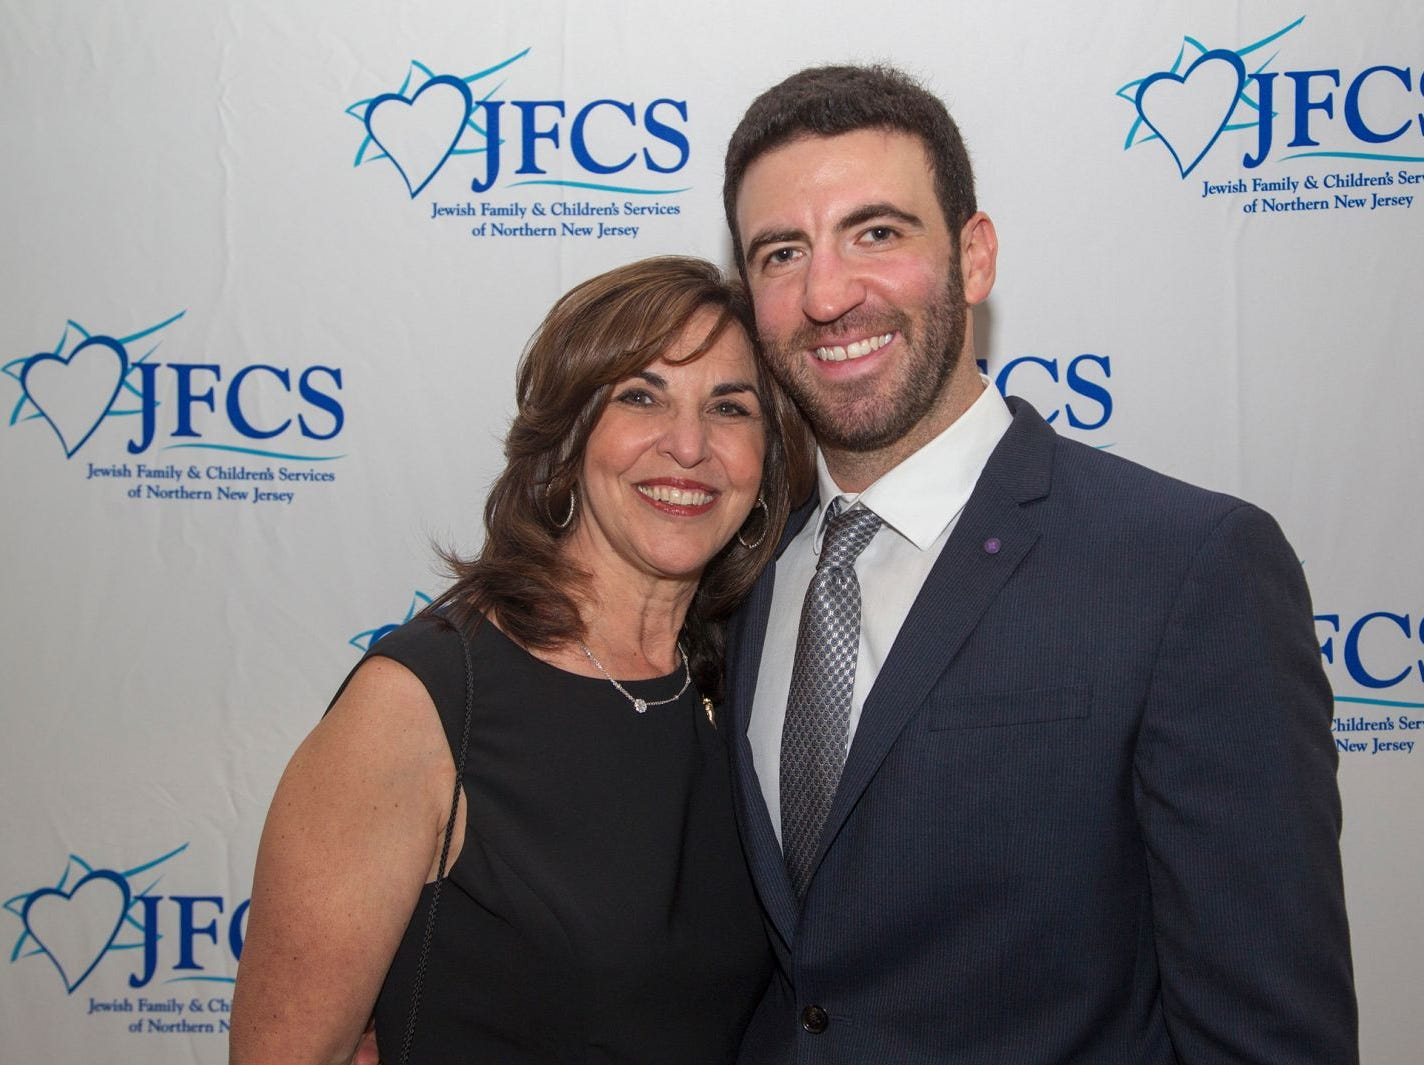 Jayne and Derek Petak. Jewish Family & Children's Services of Northern New Jersey held its annual gala at the Edgewood Country Club in River Vale. The evening honored Shira Feuerstein, Jayne Petak, and Alan Scharfstein for their leadership, support, and dedication. 11/18/2018